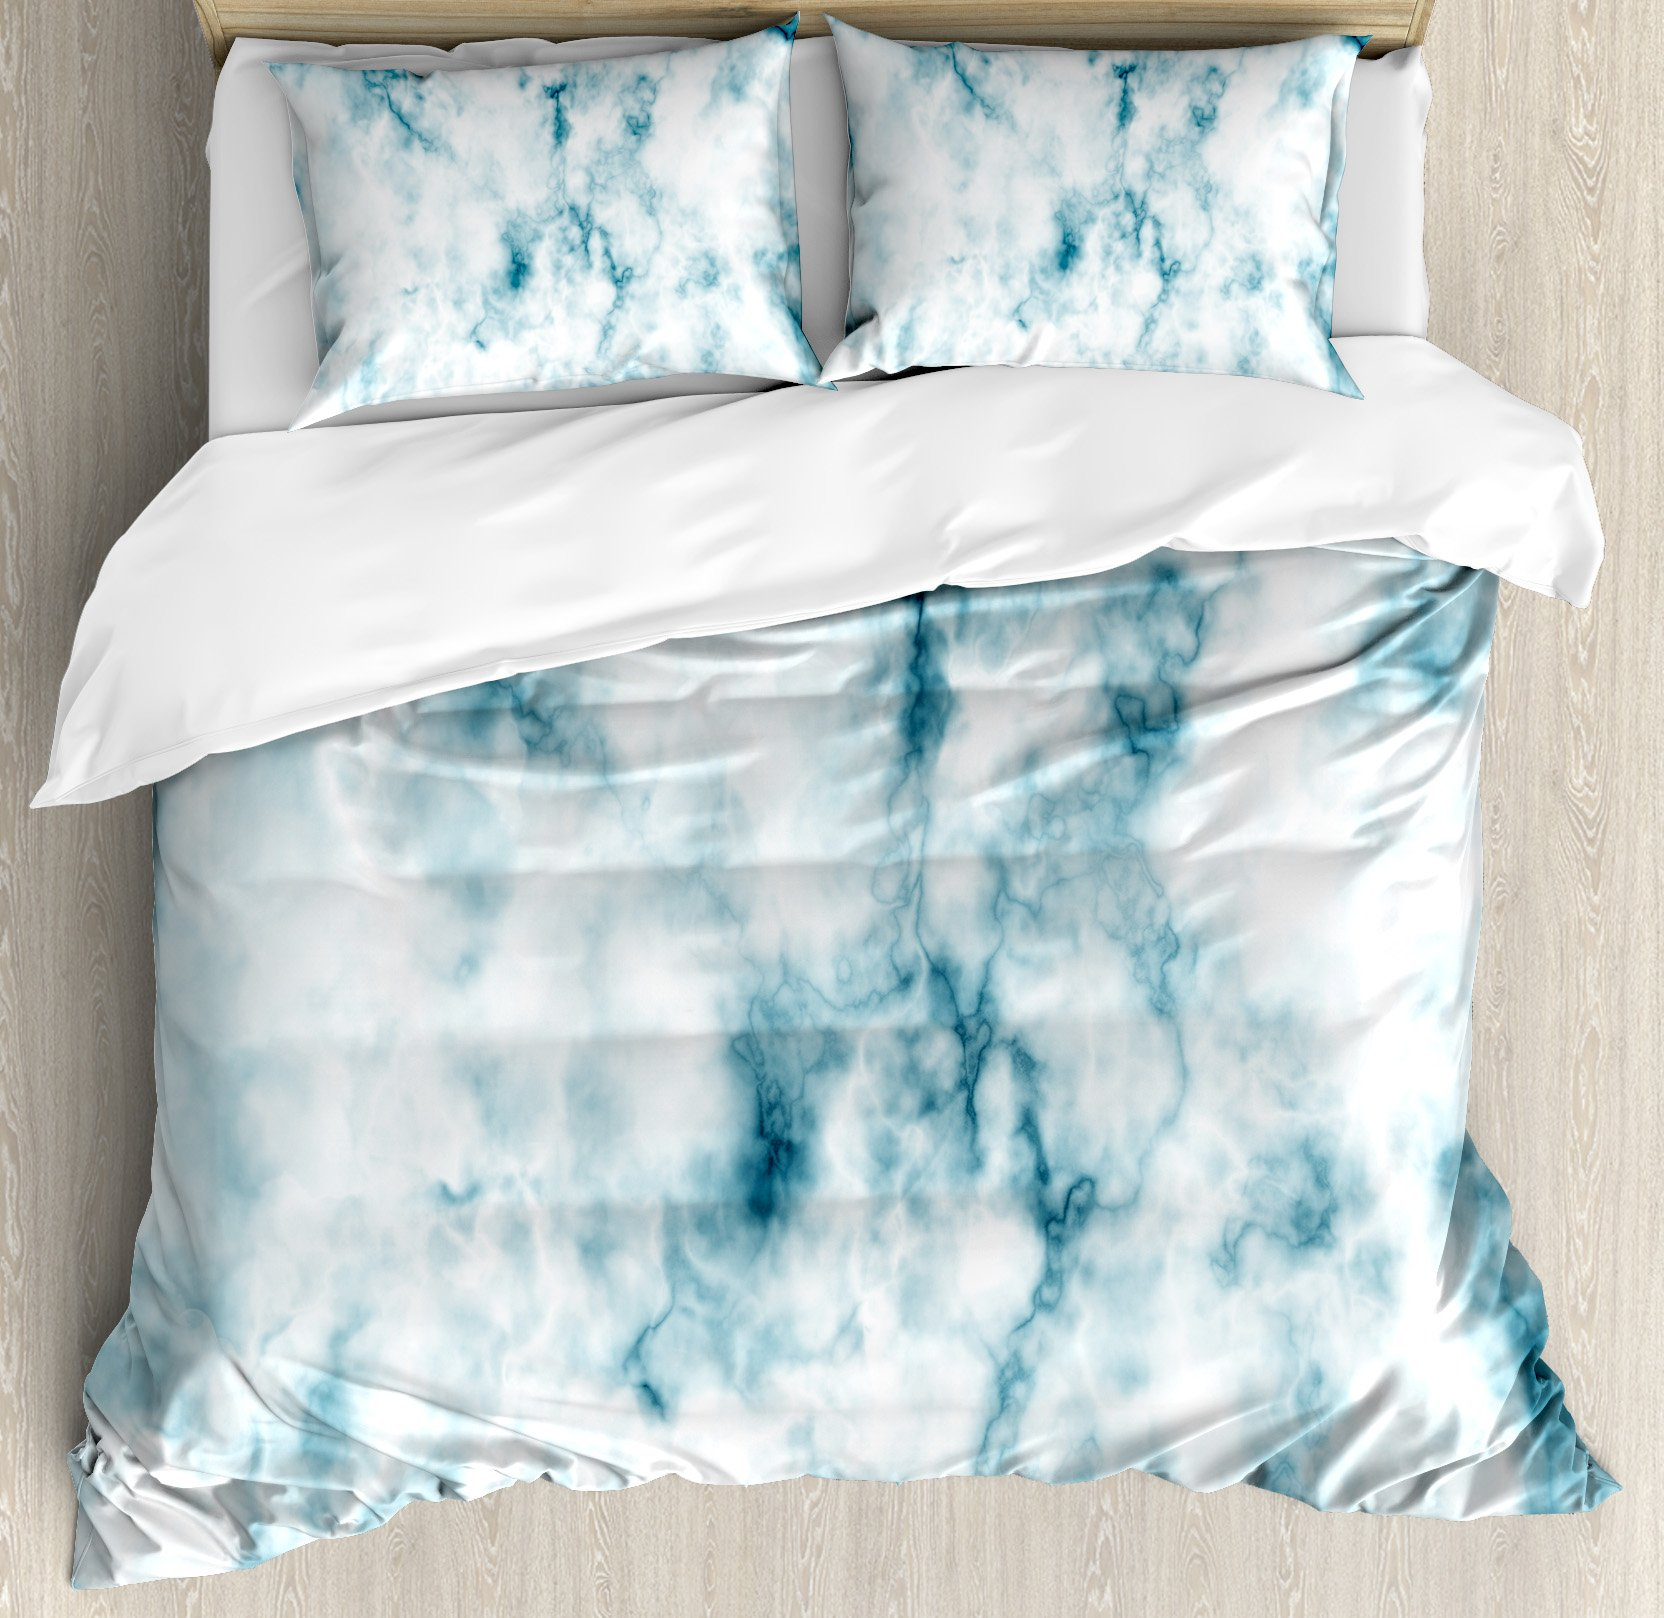 Apartment Decor Duvet Cover Set by Ambesonne, Fluffy Cloud Skyline Like Marble Motif with Grunge Features Art Image, 3 Piece Bedding Set with Pillow Shams, Queen / Full, Turquoise